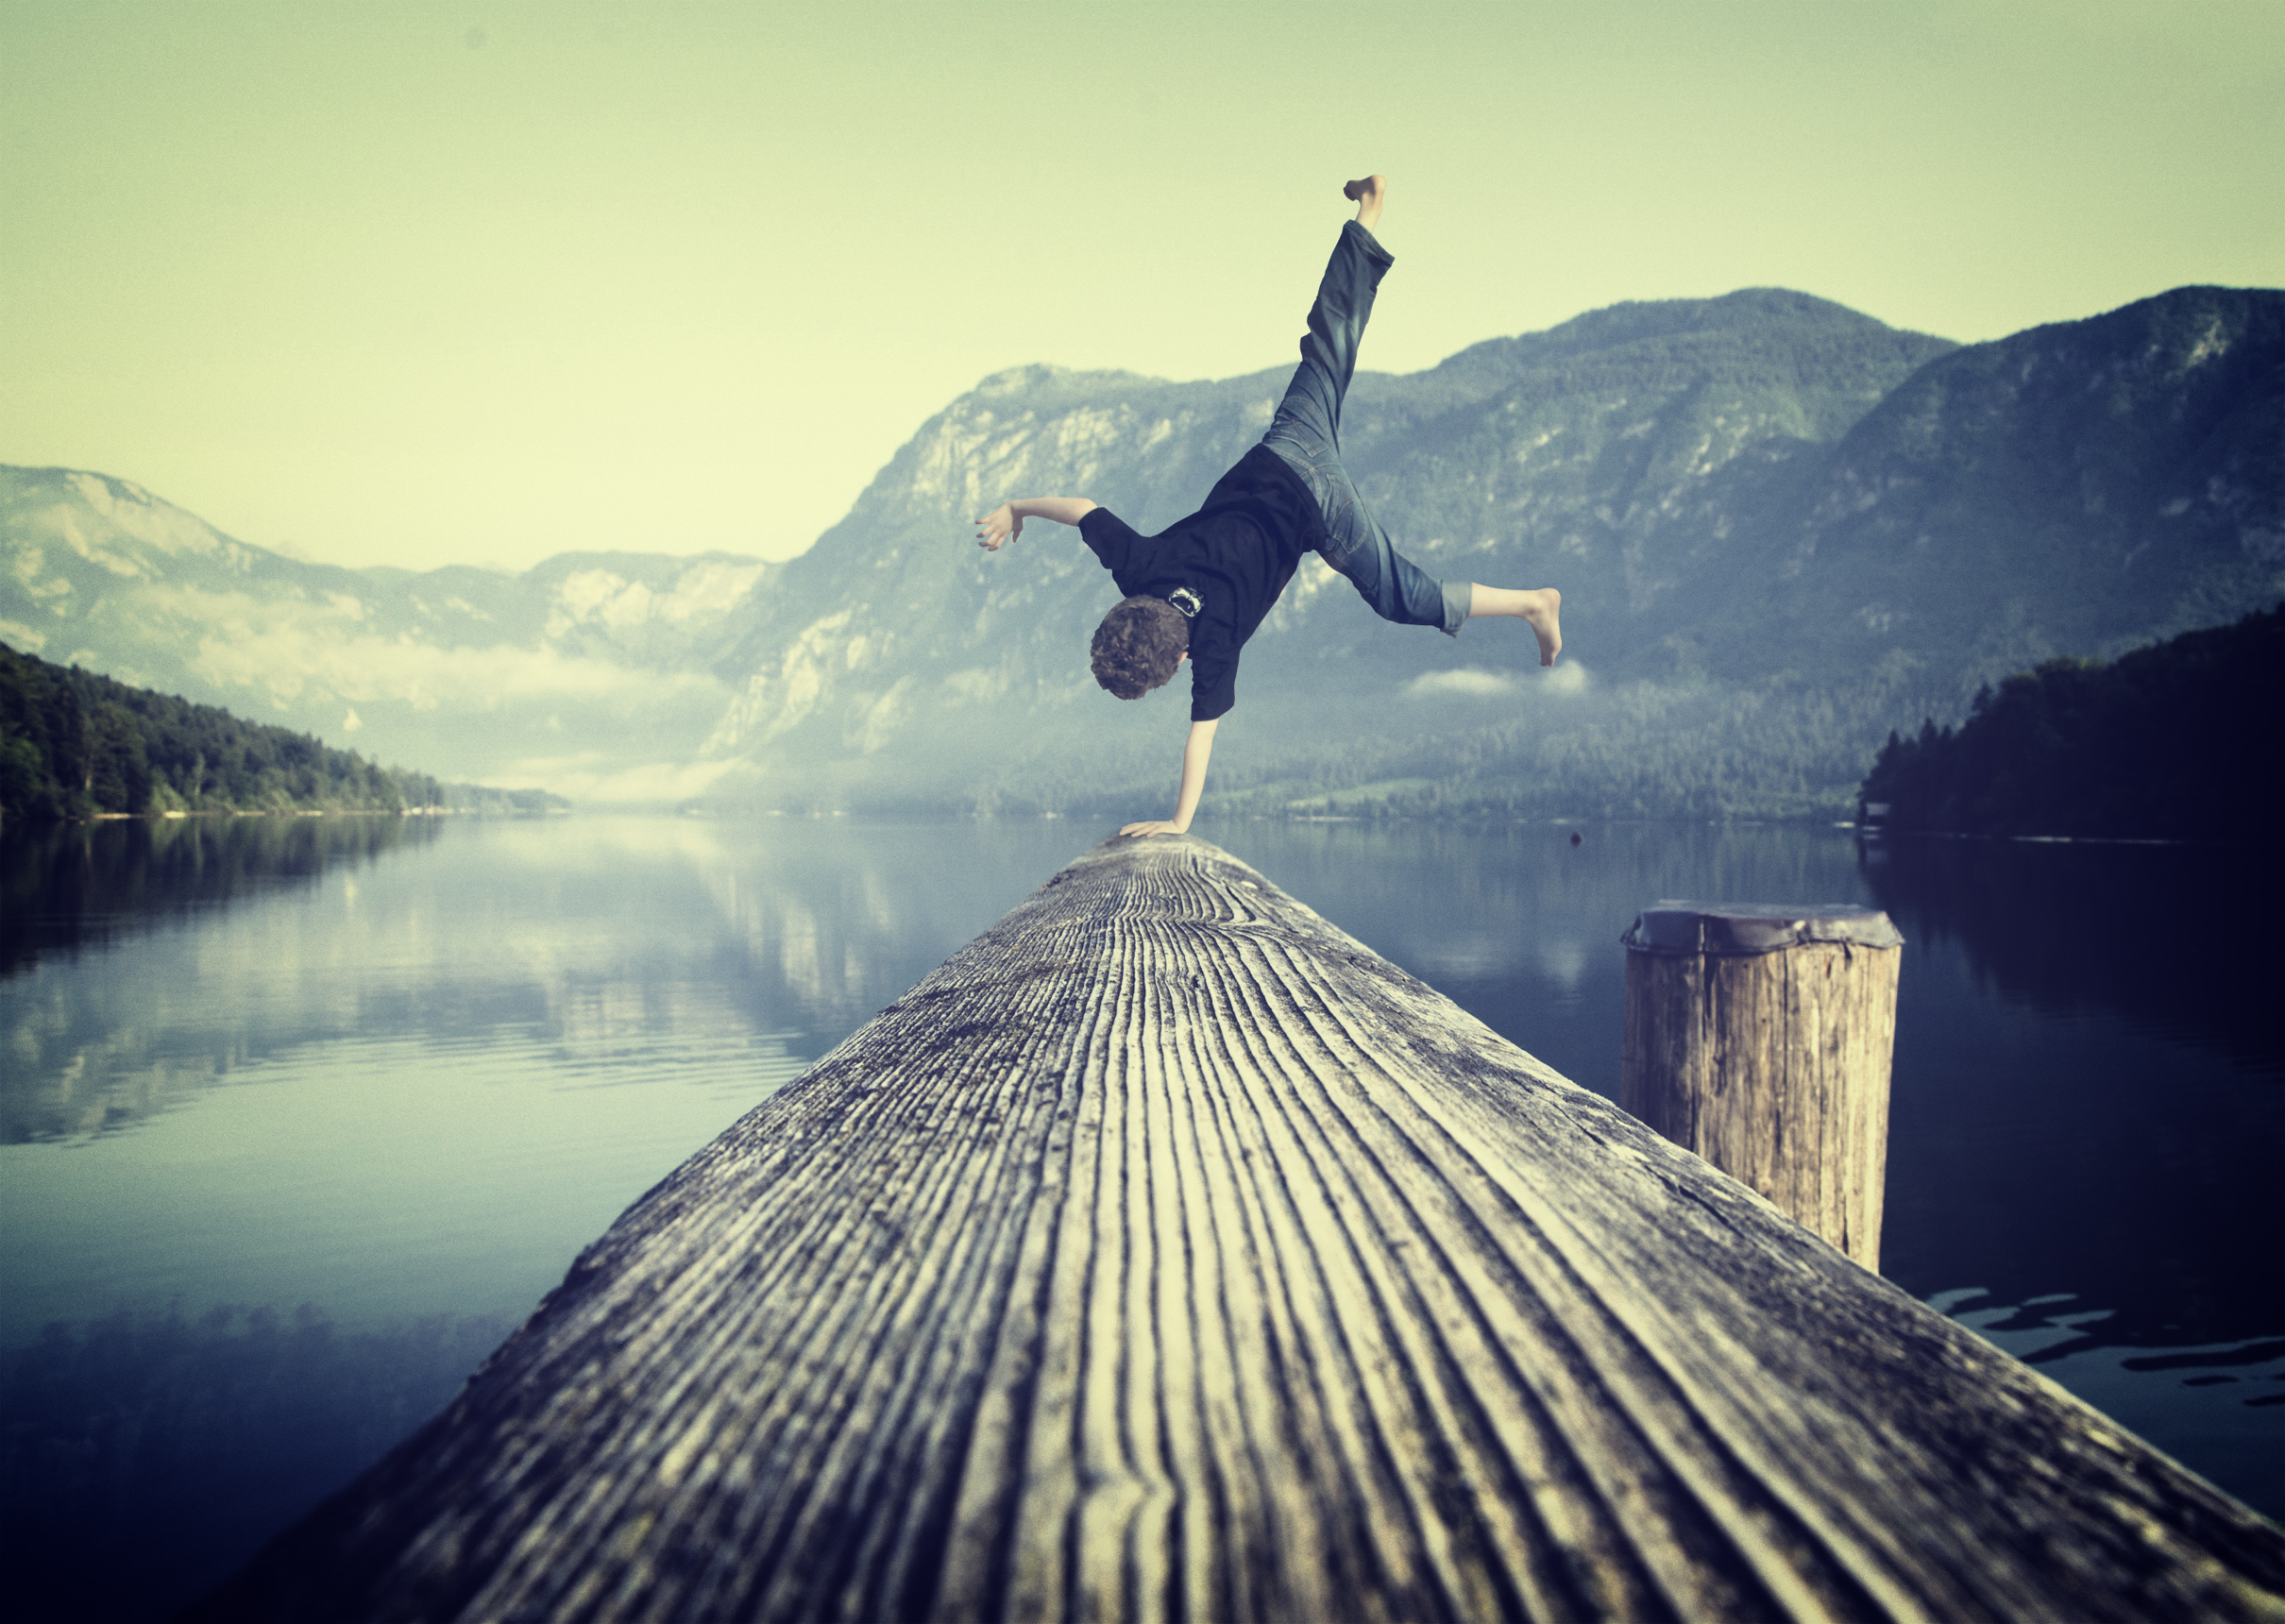 Young boy handstanding on jetty, Action, Person, Schoolboy, Raised, HQ Photo